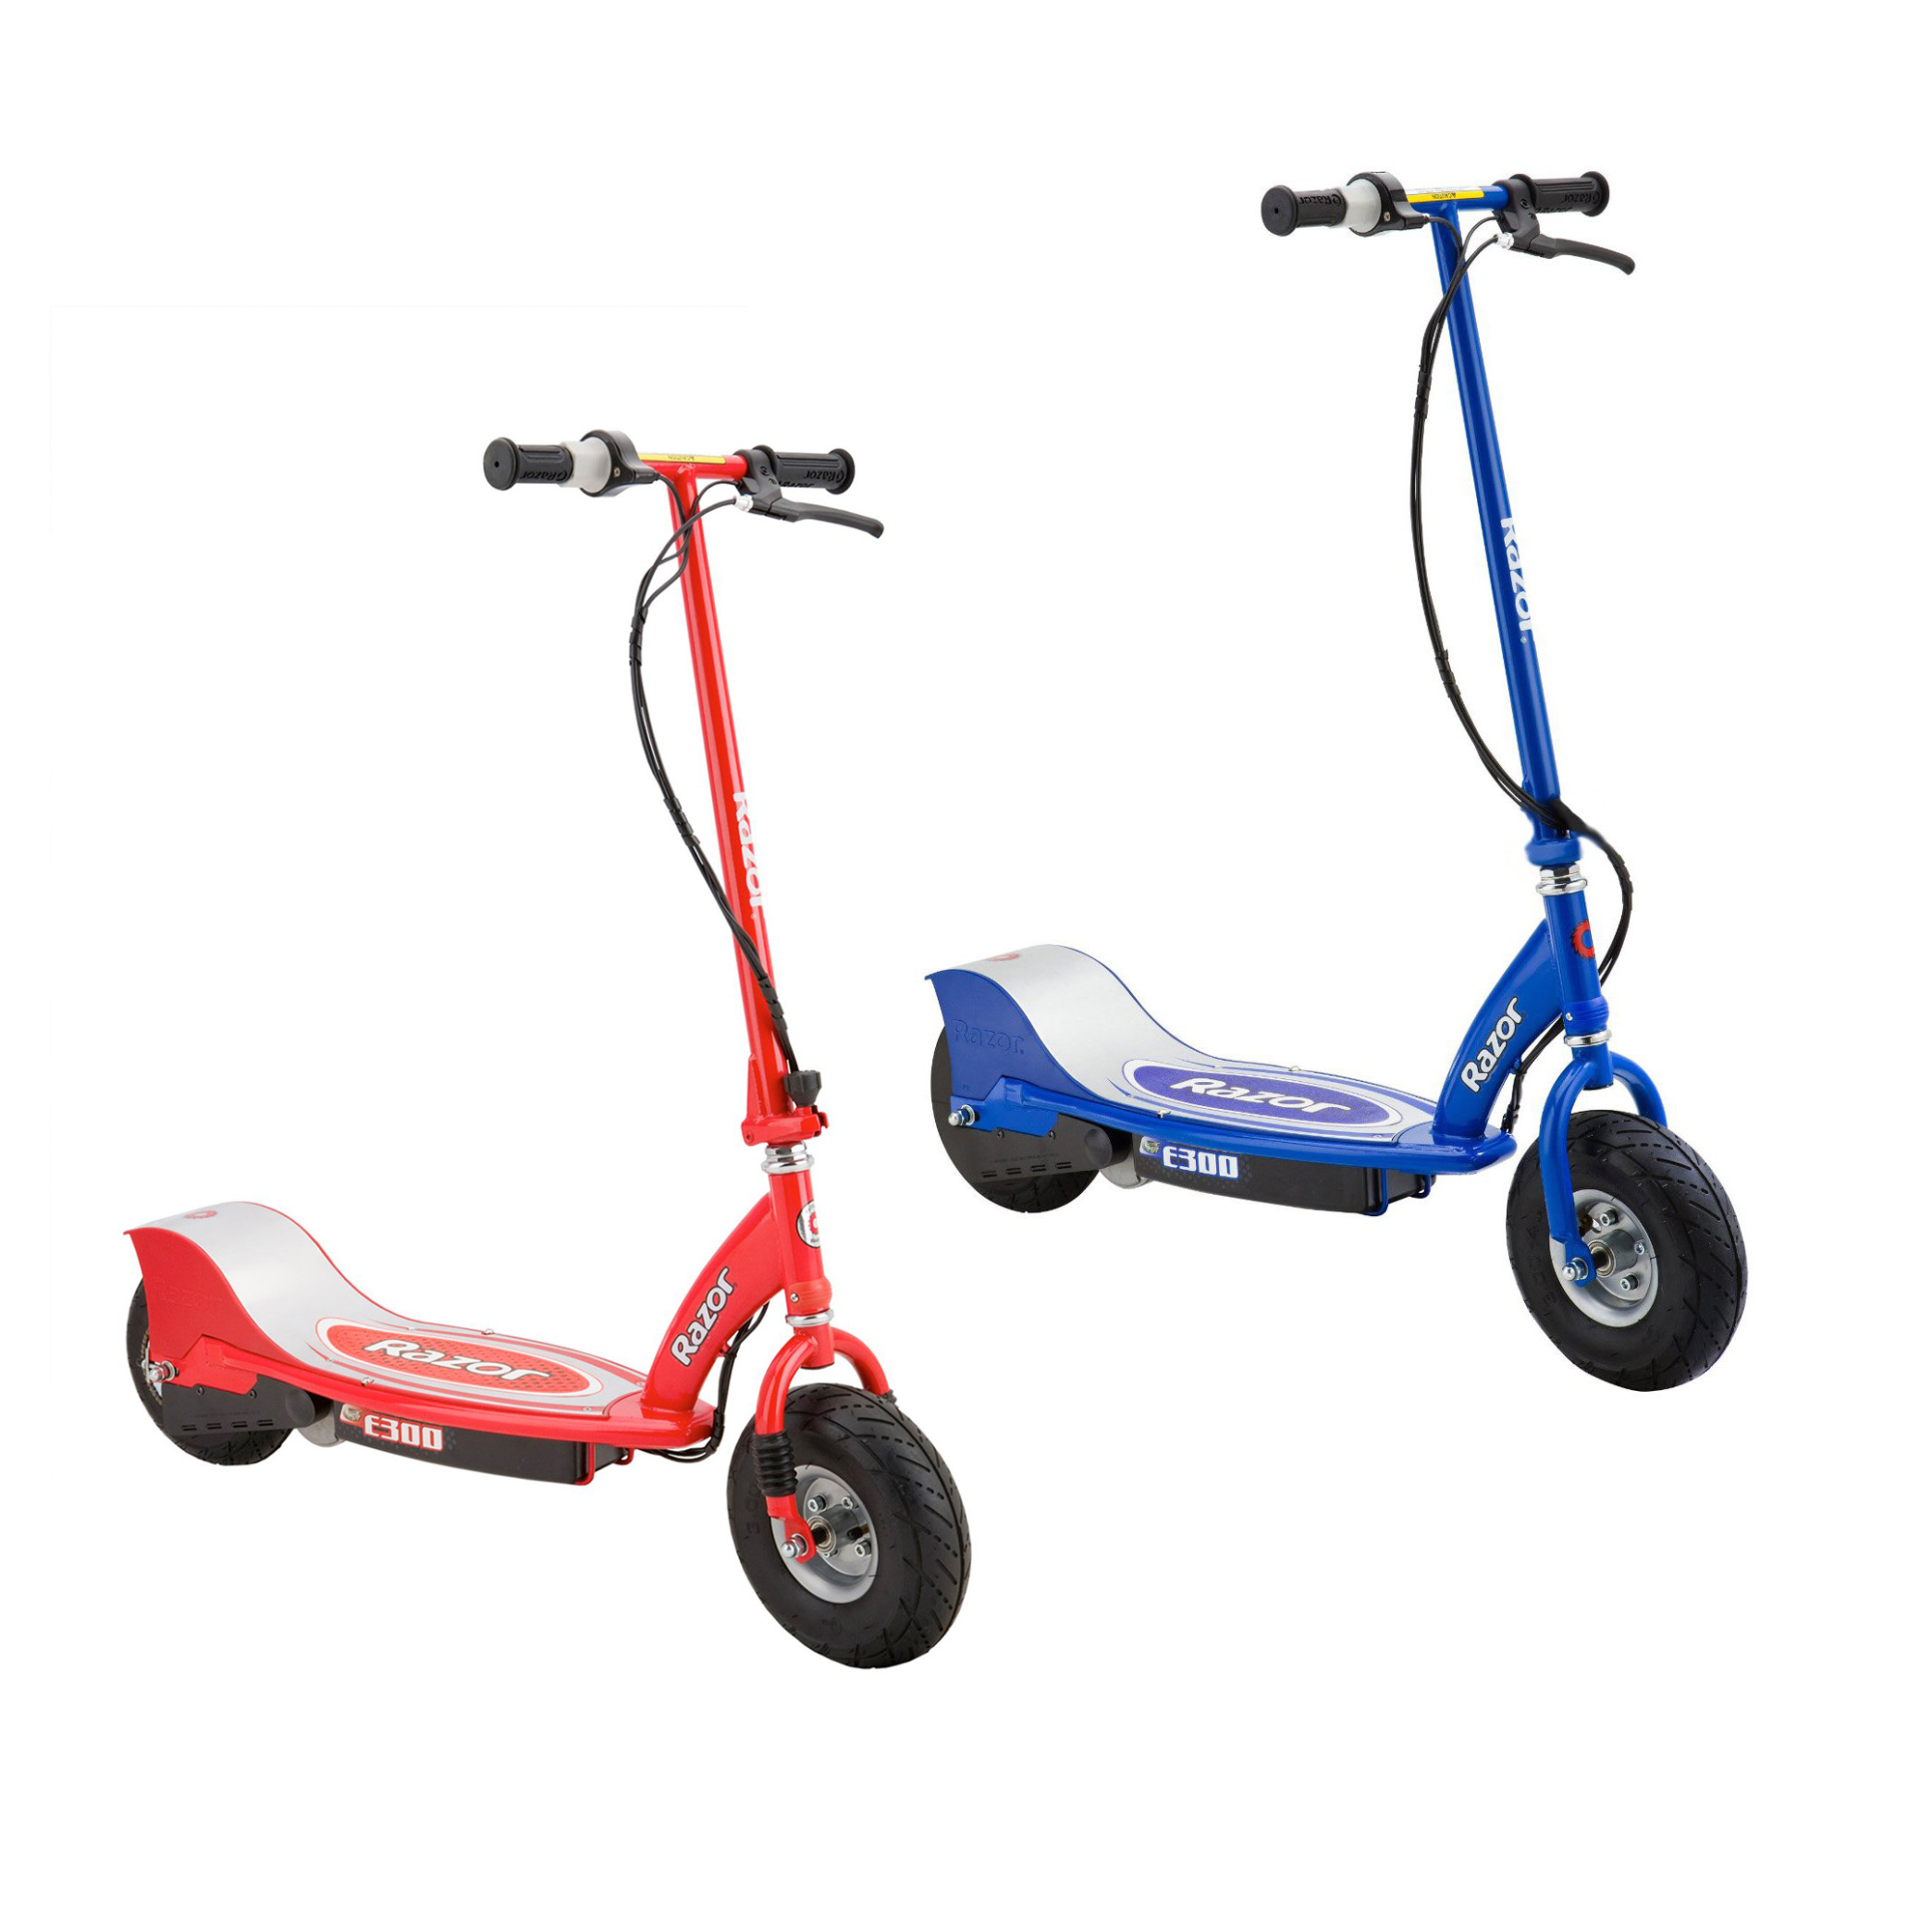 Razor E300 Rechargeable Electric Motorized Ride On Kids Scooters, 1 Red & 1 Blue by Razor